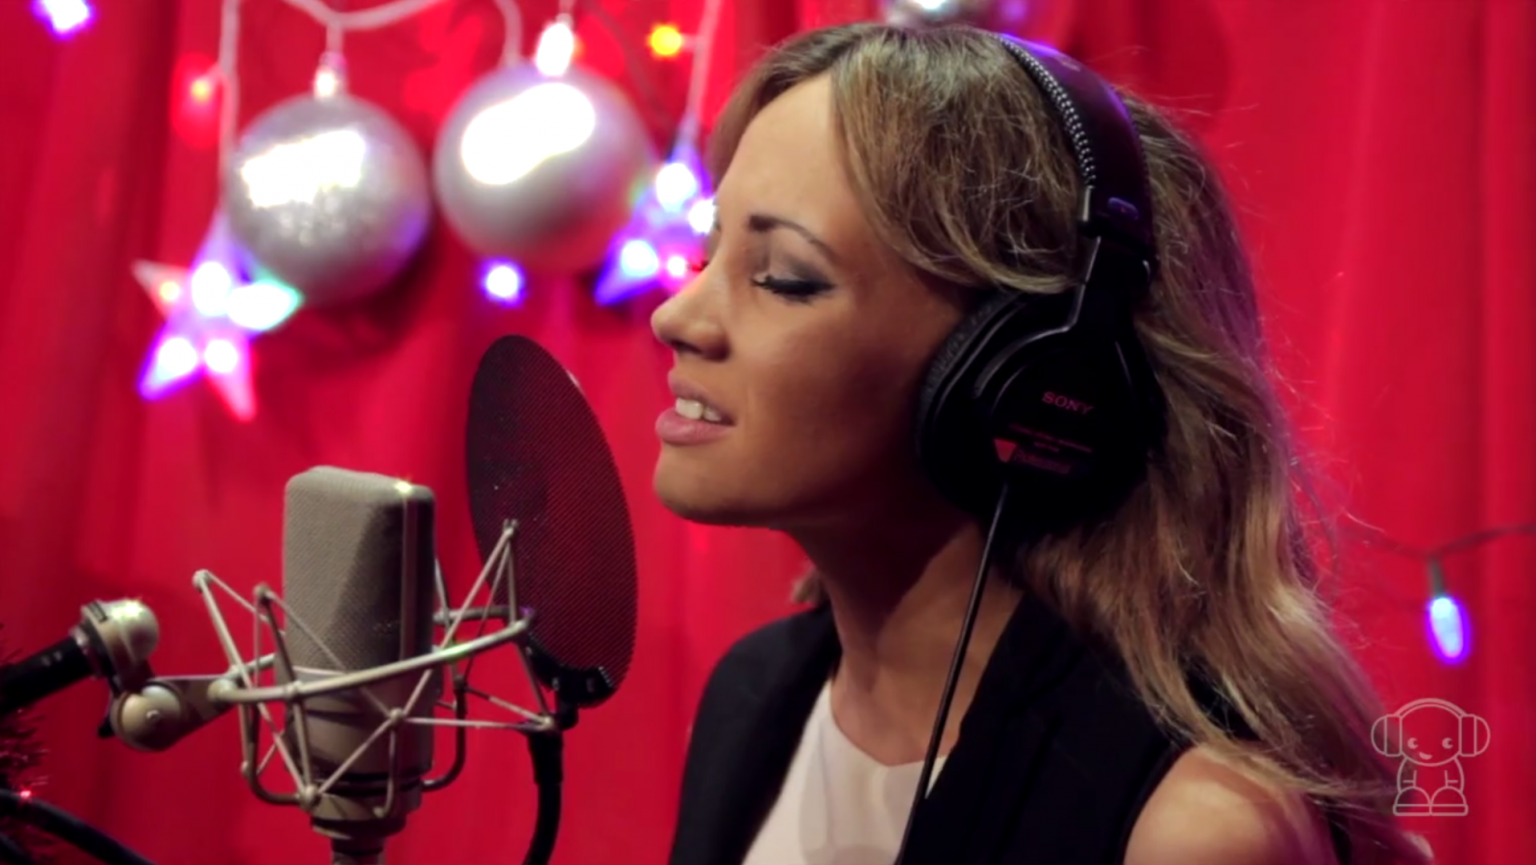 Samantha Jade performs 'All I Want For Christmas'